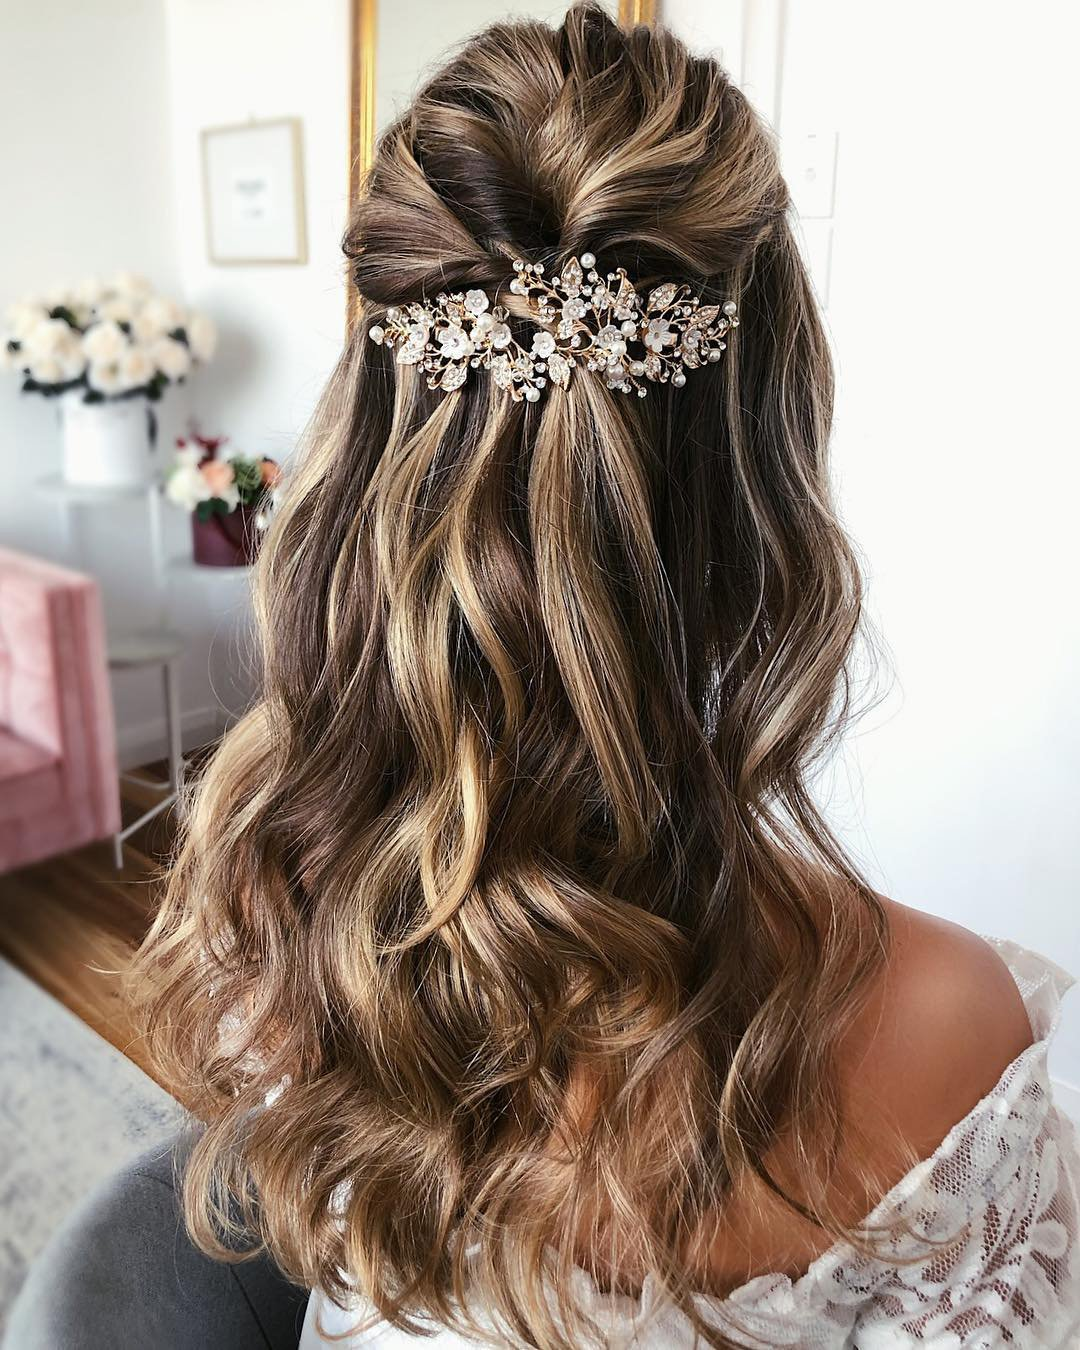 half up half down wedding hairstyles long blonde hair with curls caraclyne.bridal